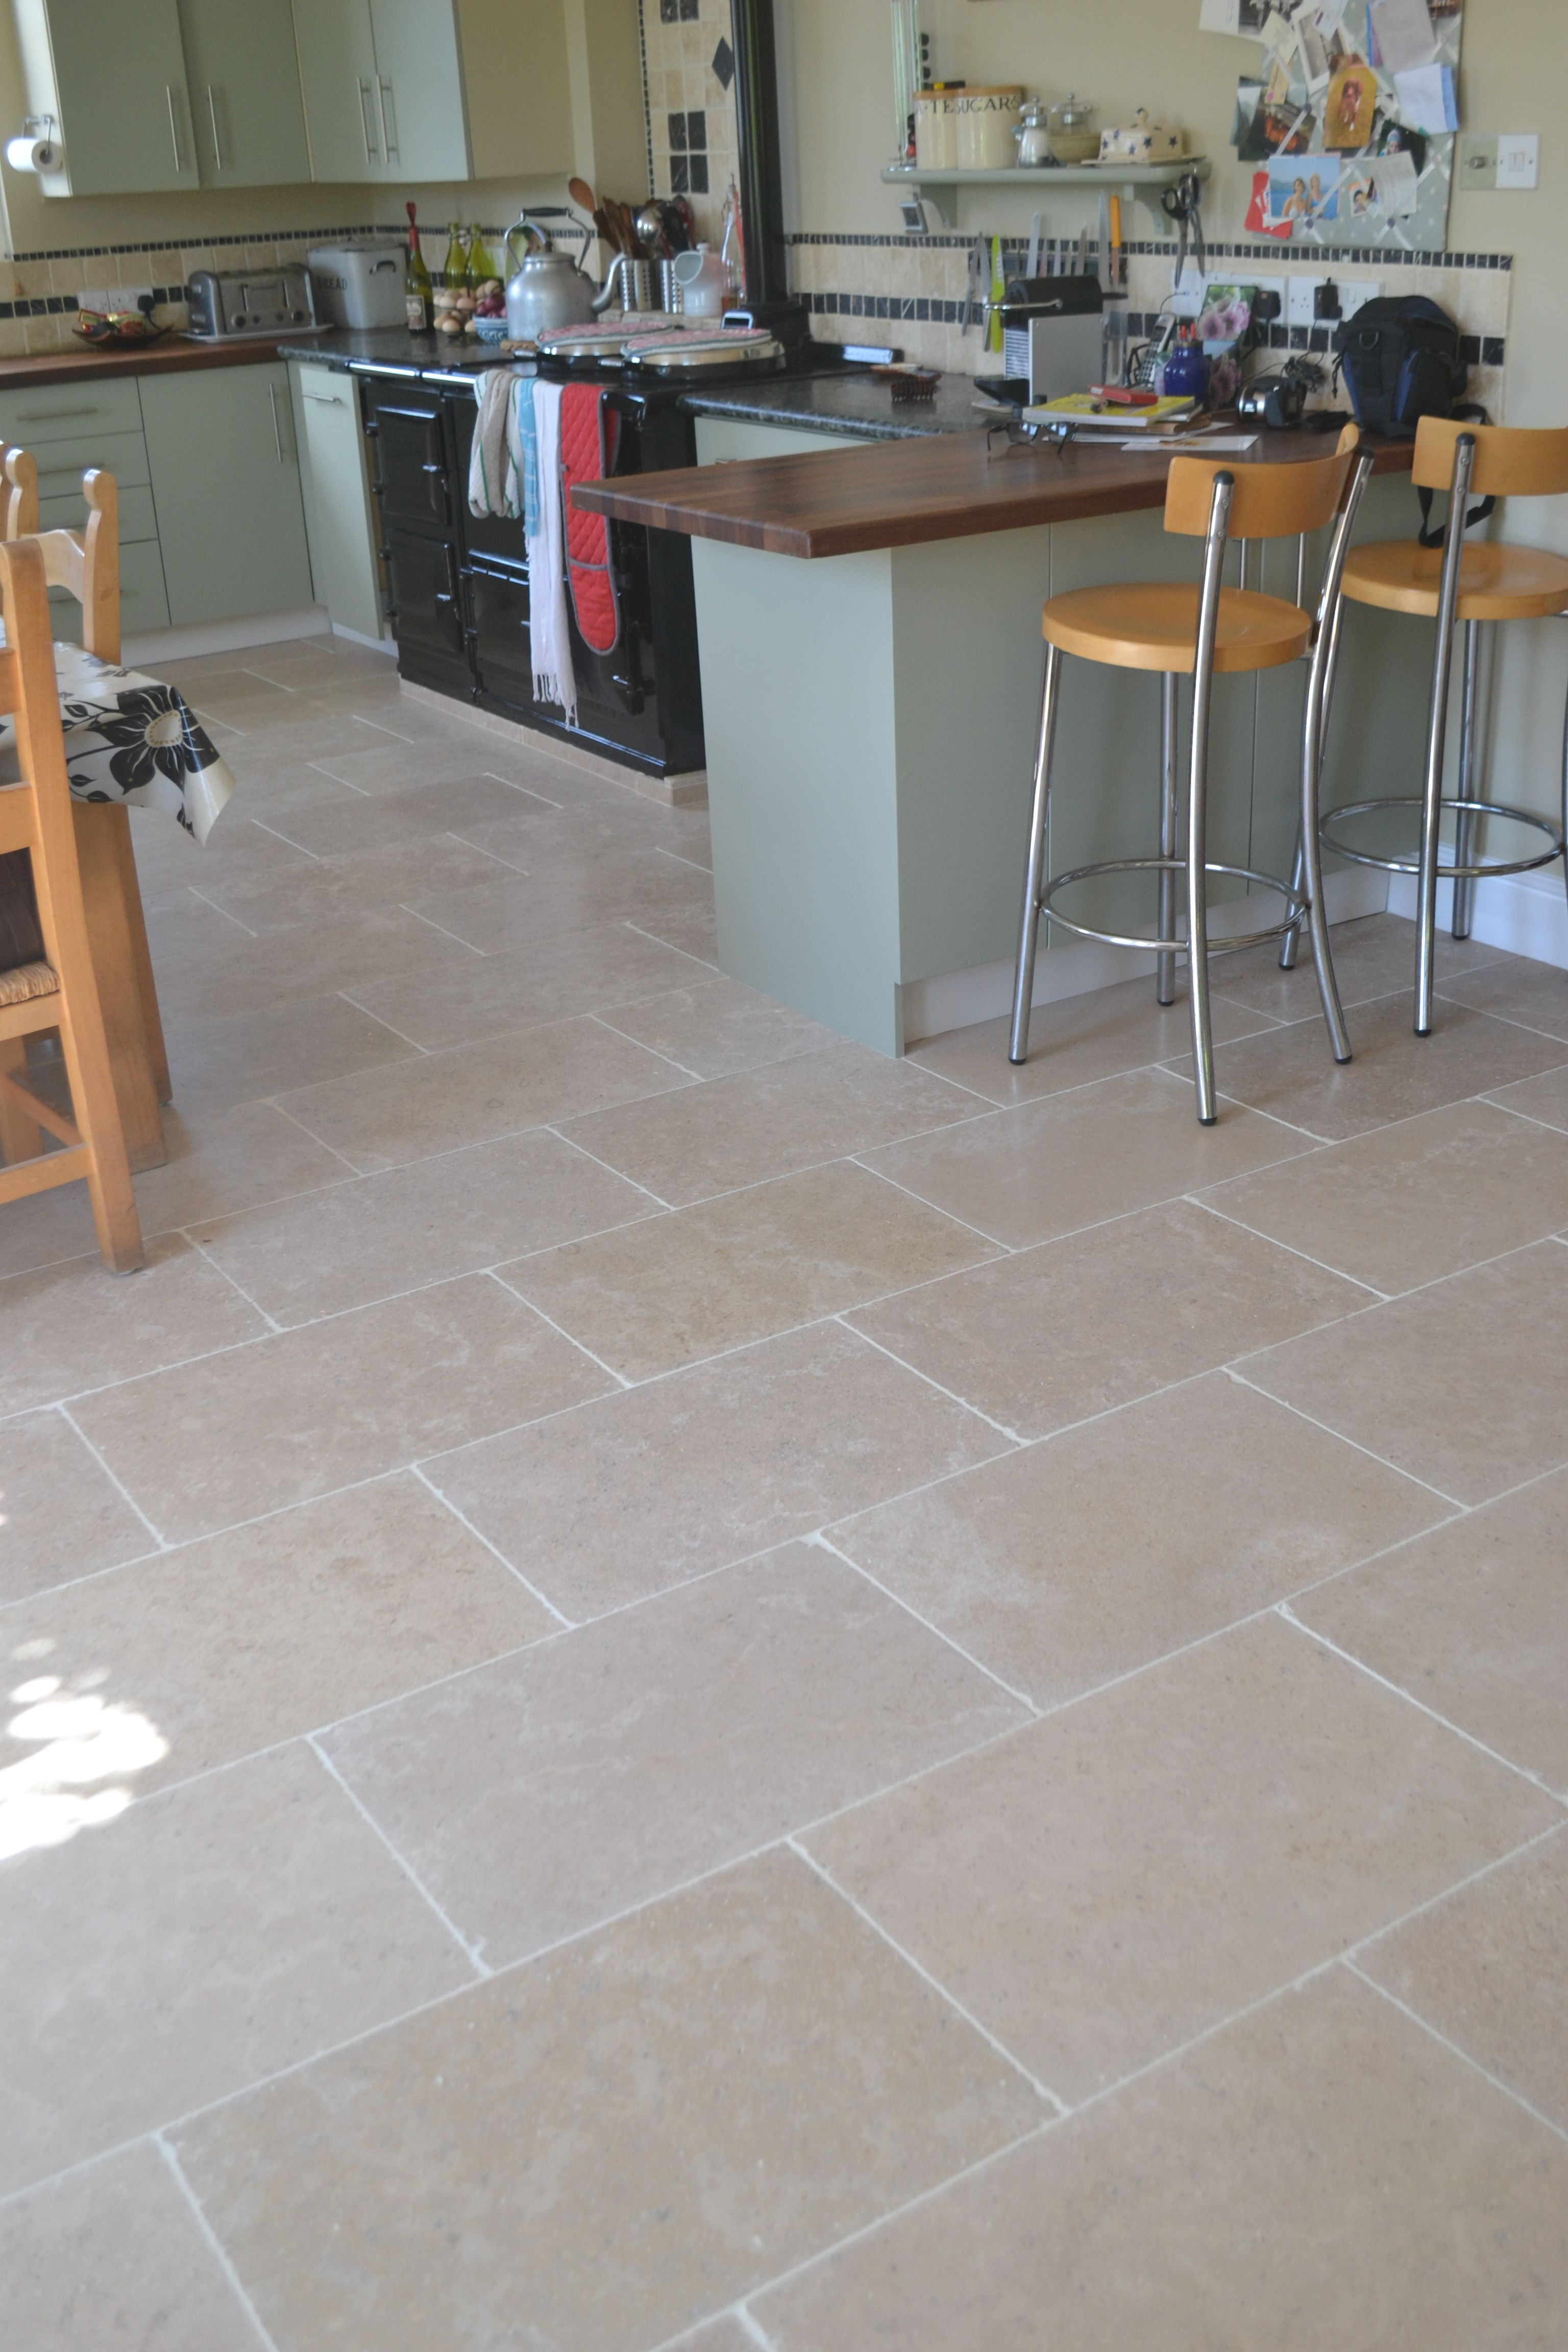 600x400x15mm Dijon laid in a brick bond pattern